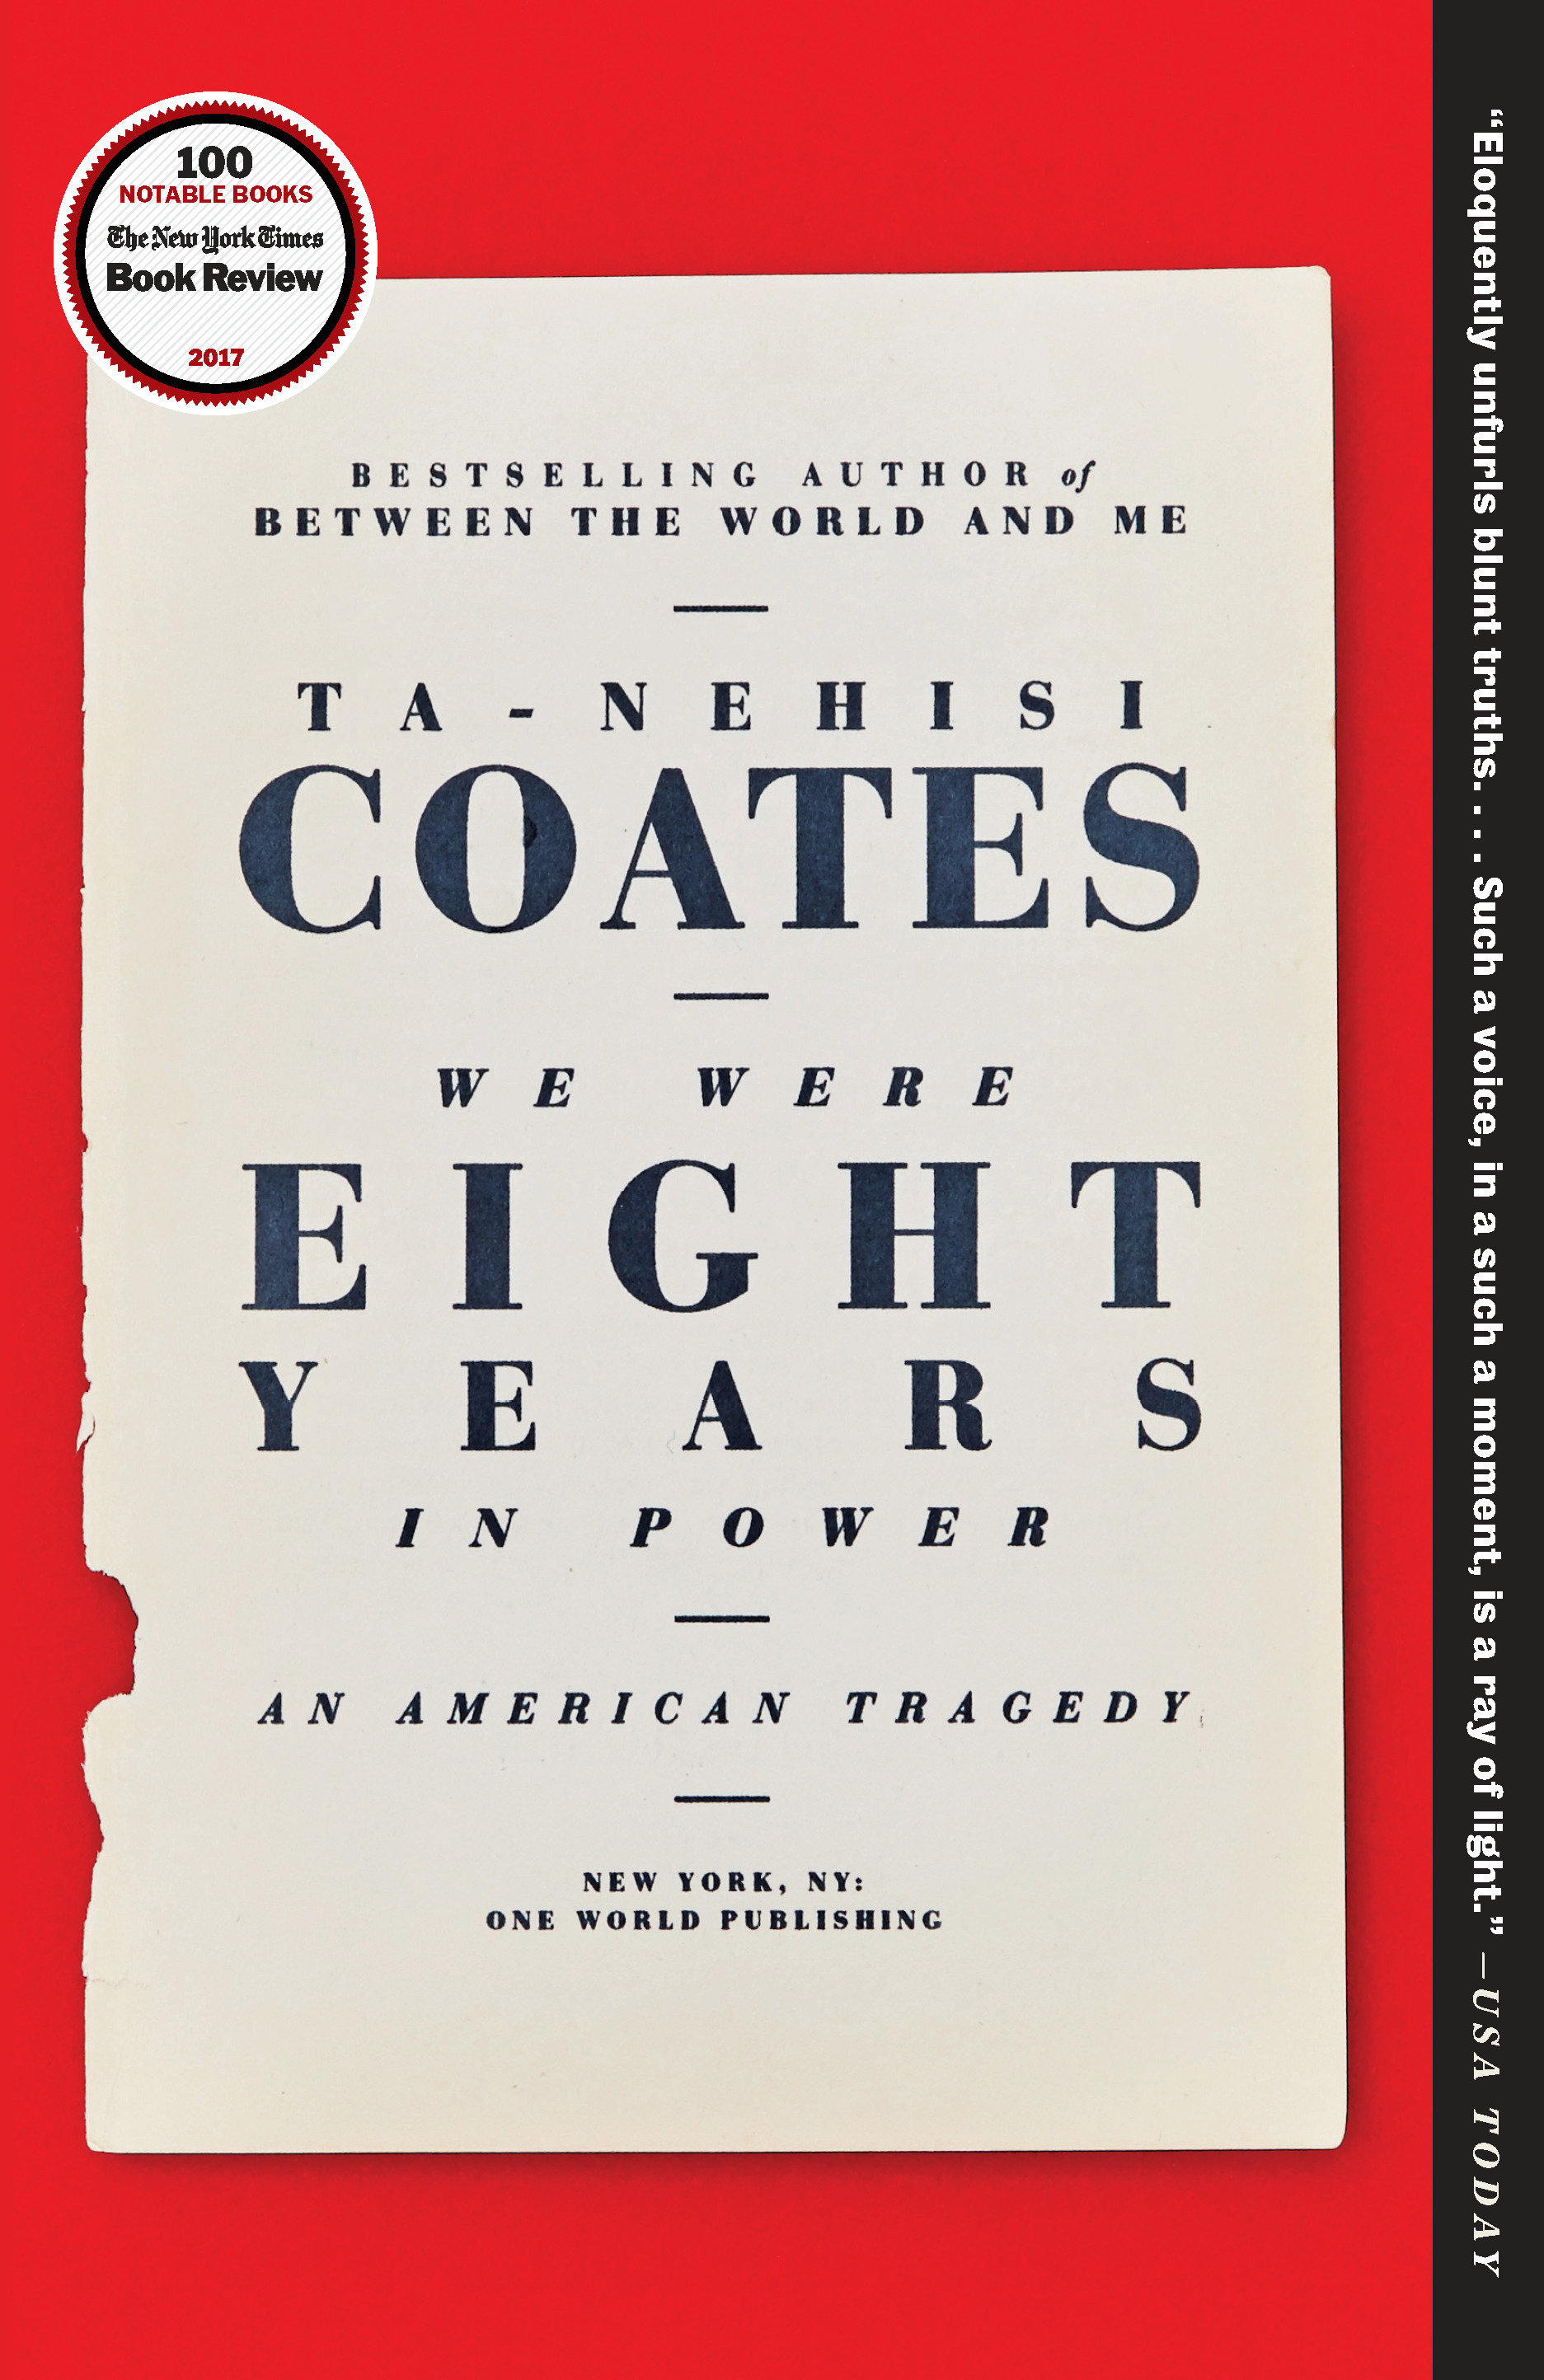 We Were Eight Years in Power [electronic resource] : An American Tragedy